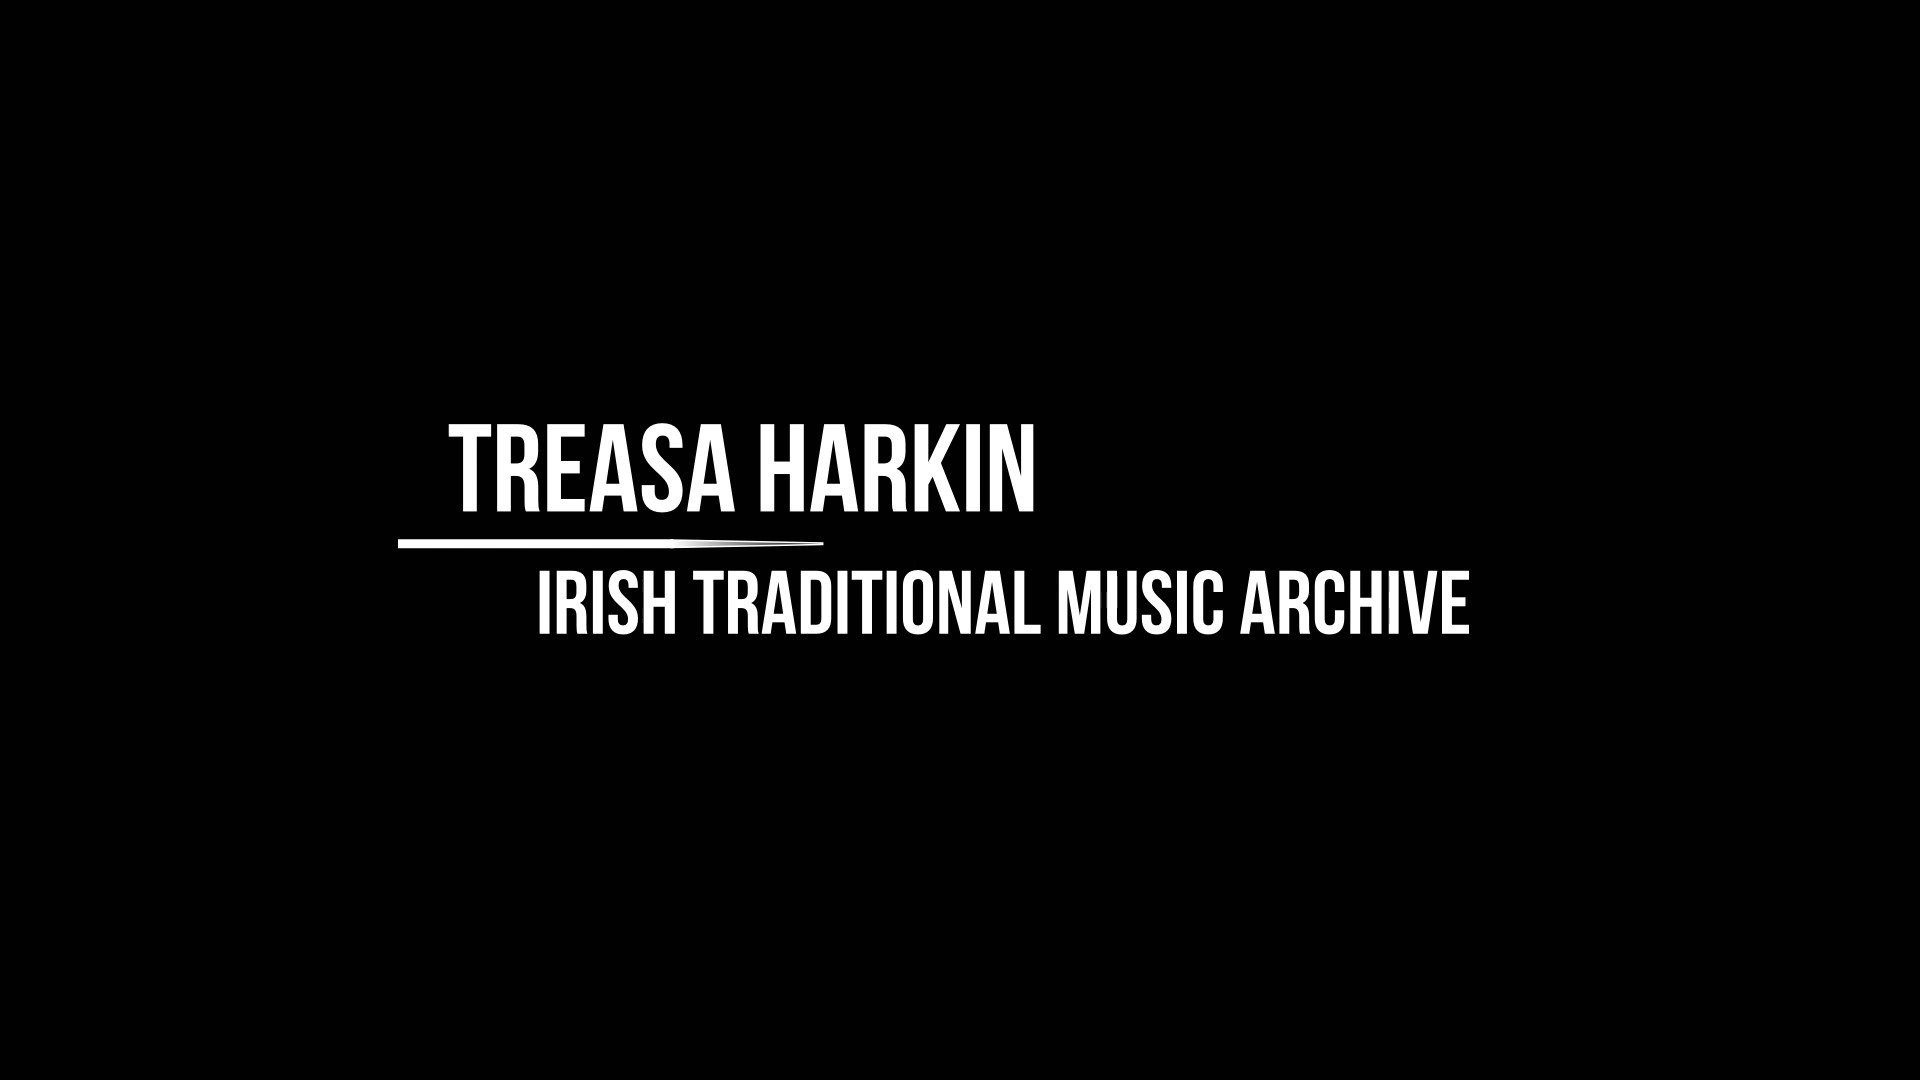 Workshop 1 – Treasa Harkin – Preserving records from the Willie Clancy music festival